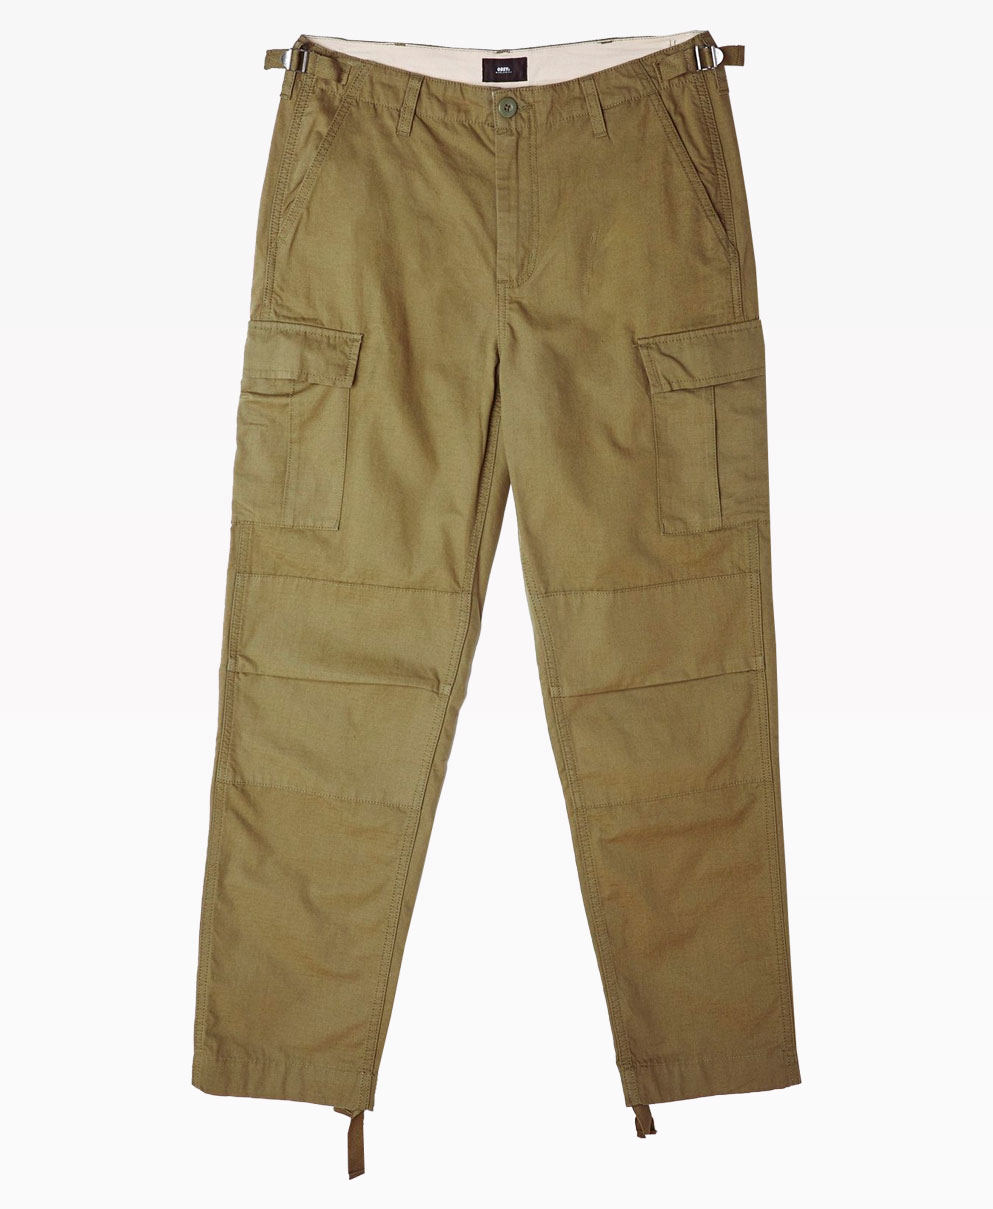 Obey Clothing Fatigue Cargo Pant Front